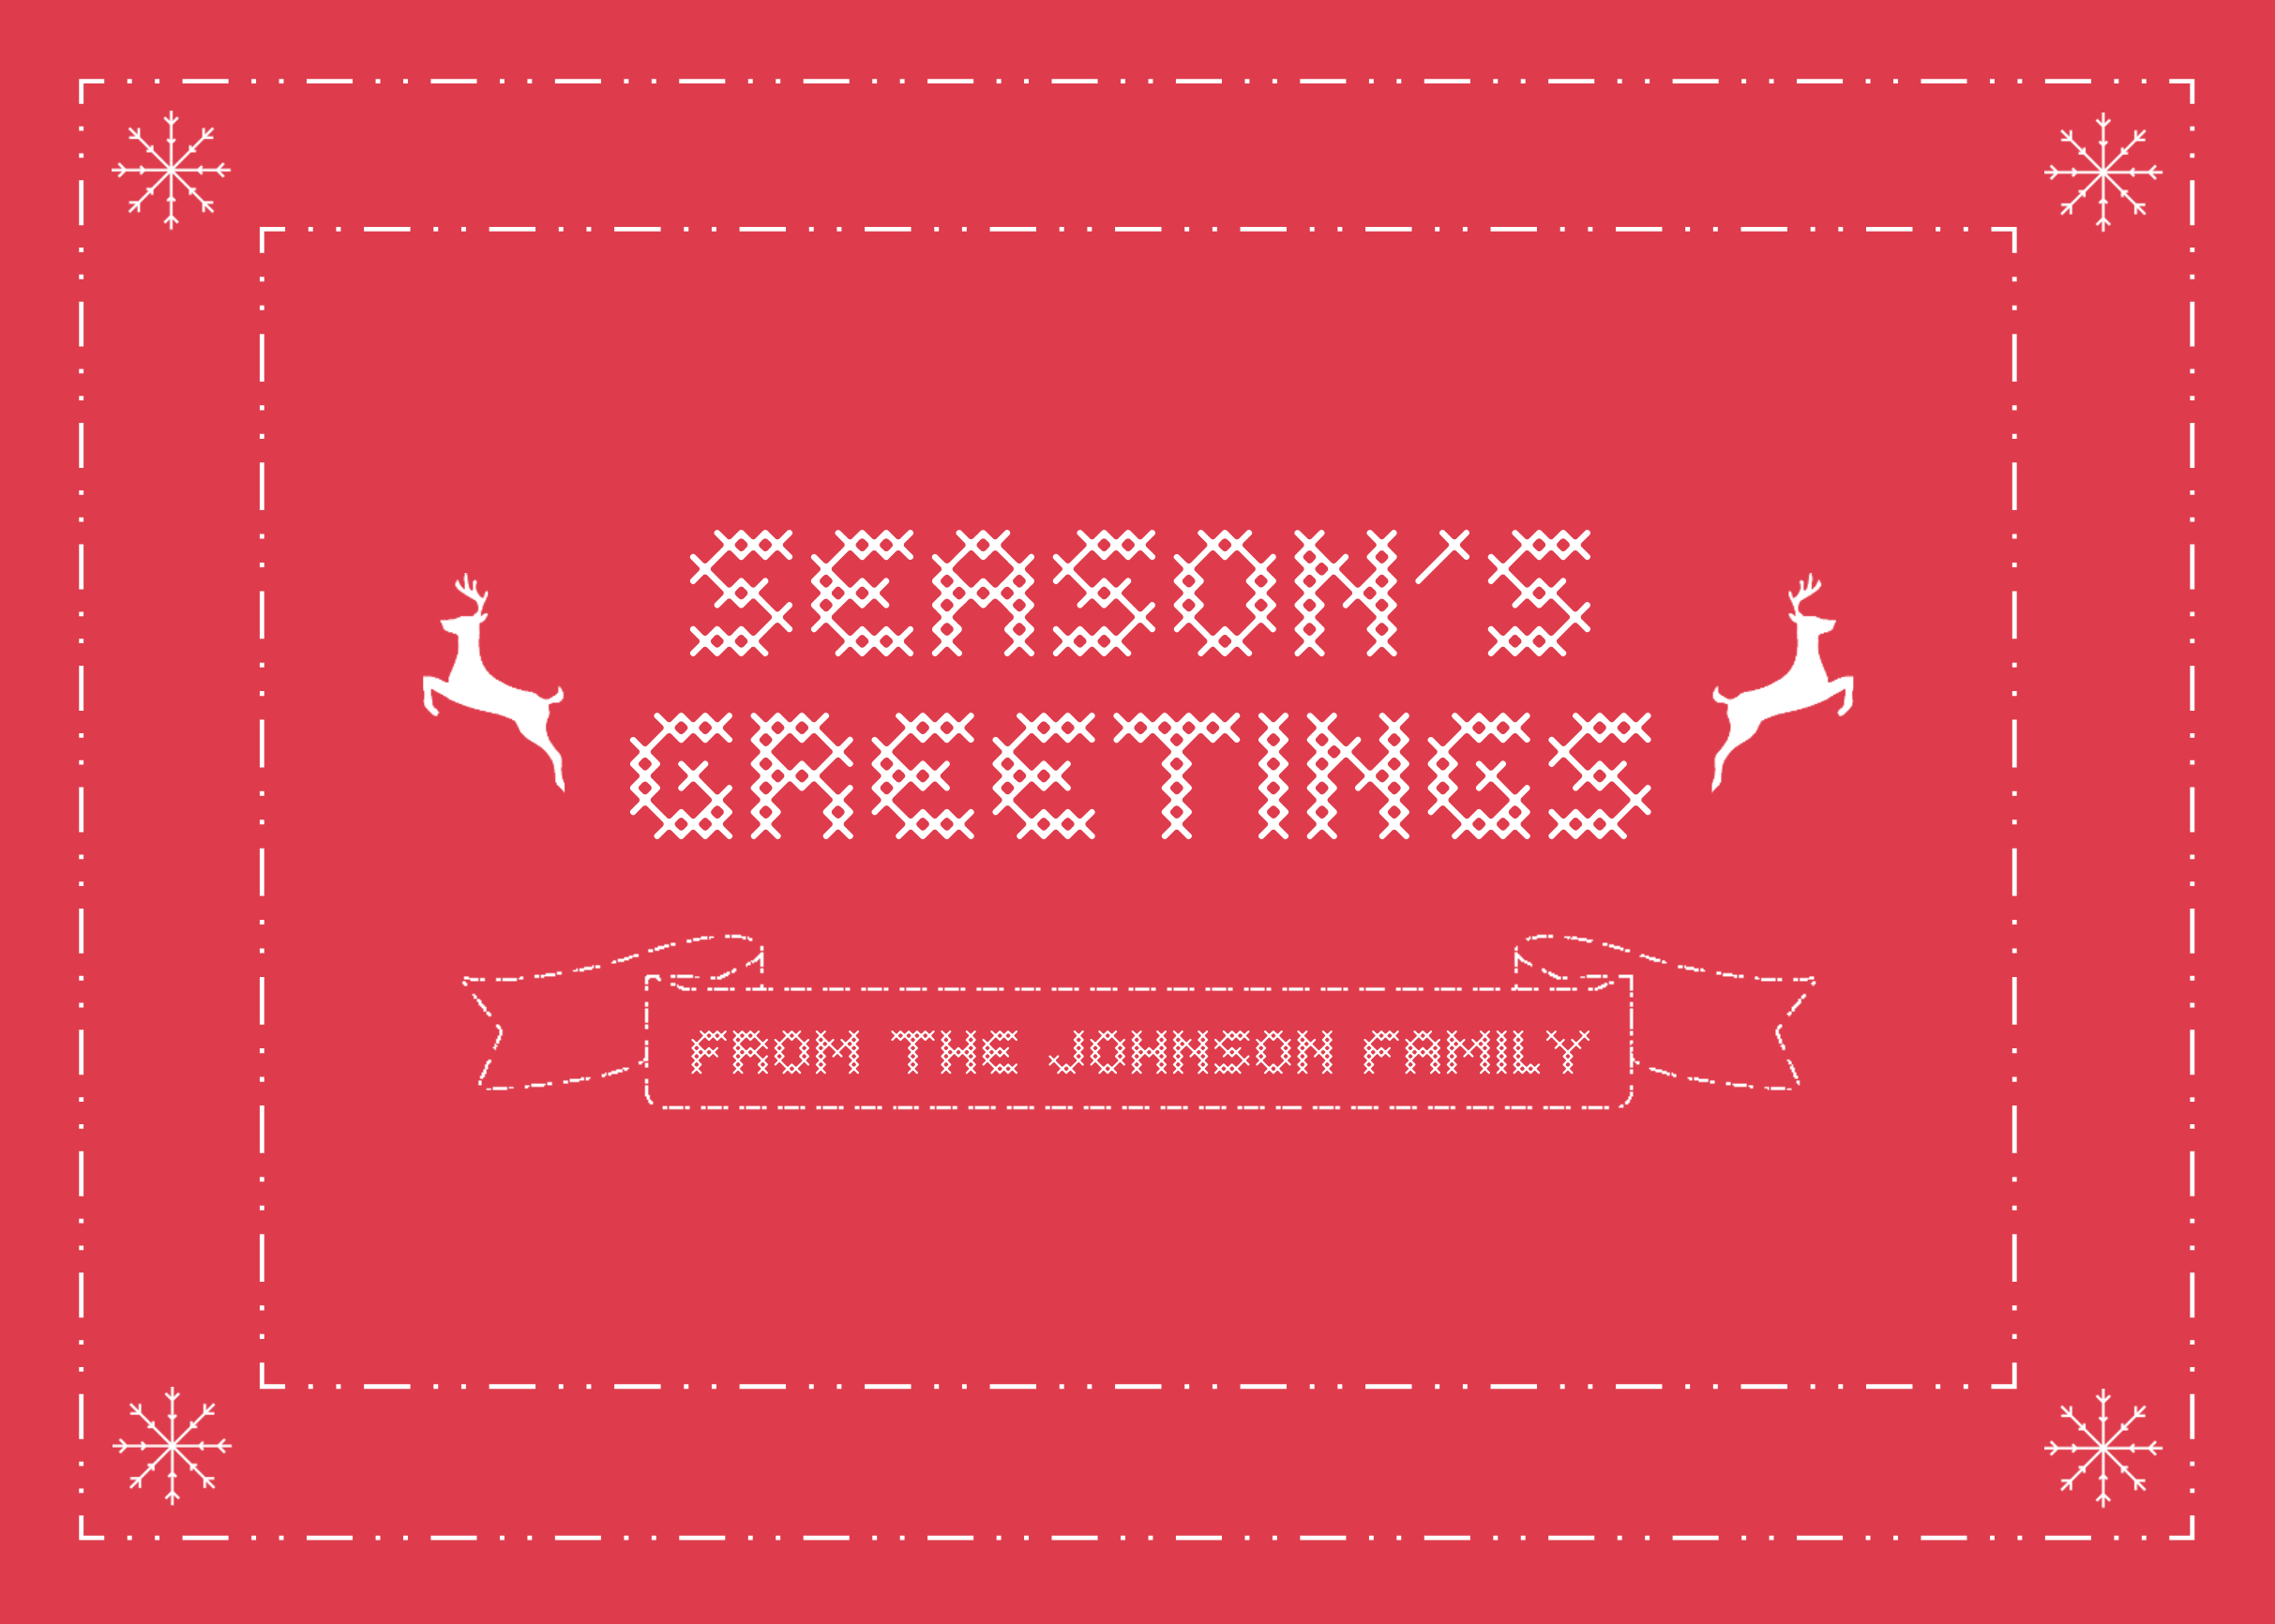 Season S Greetings Postcard Template Customize This Postcard Template Online With Only A Few Seasons Greetings Card Greeting Card Template Seasons Greetings